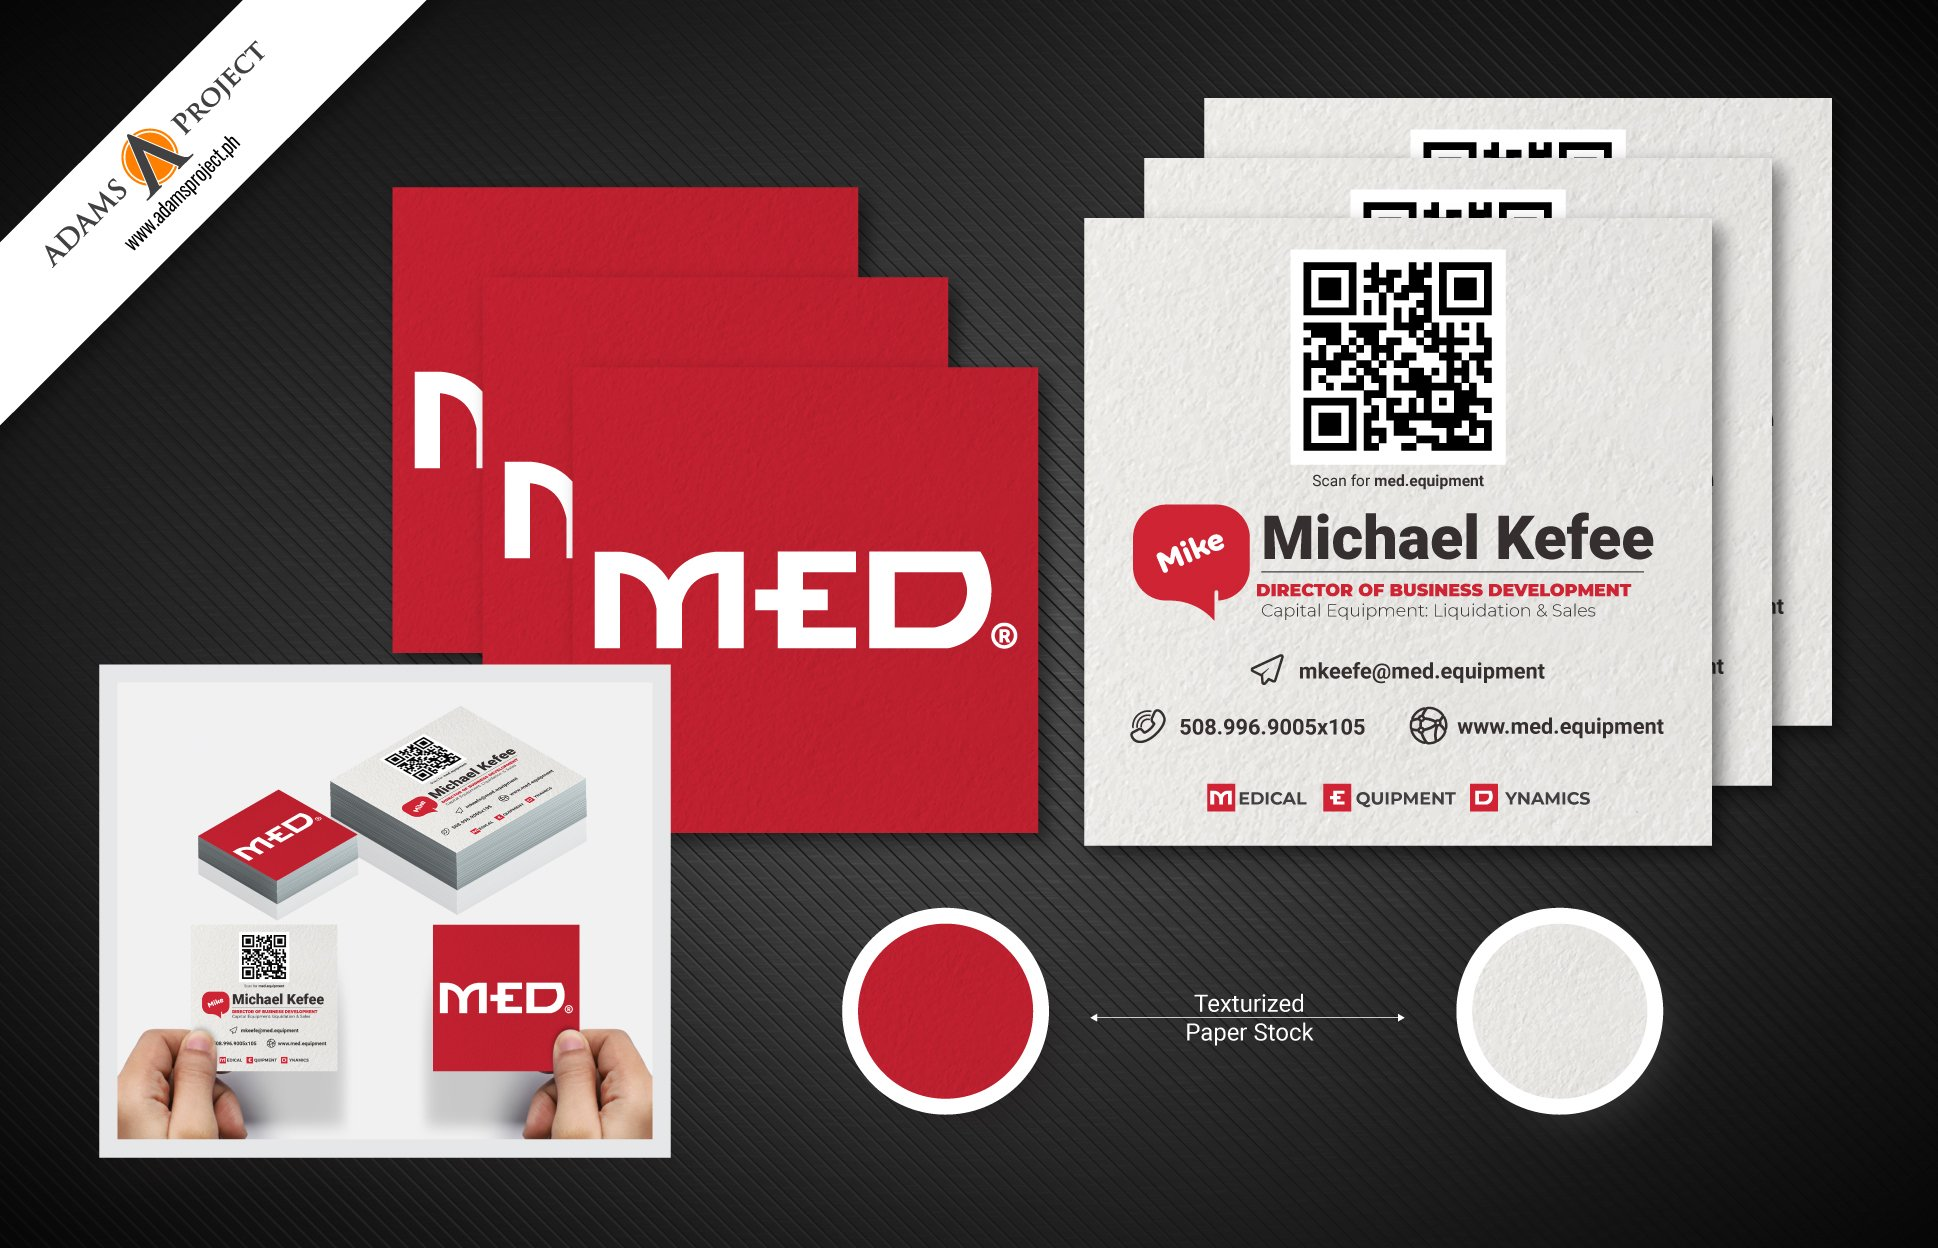 businessCardMED